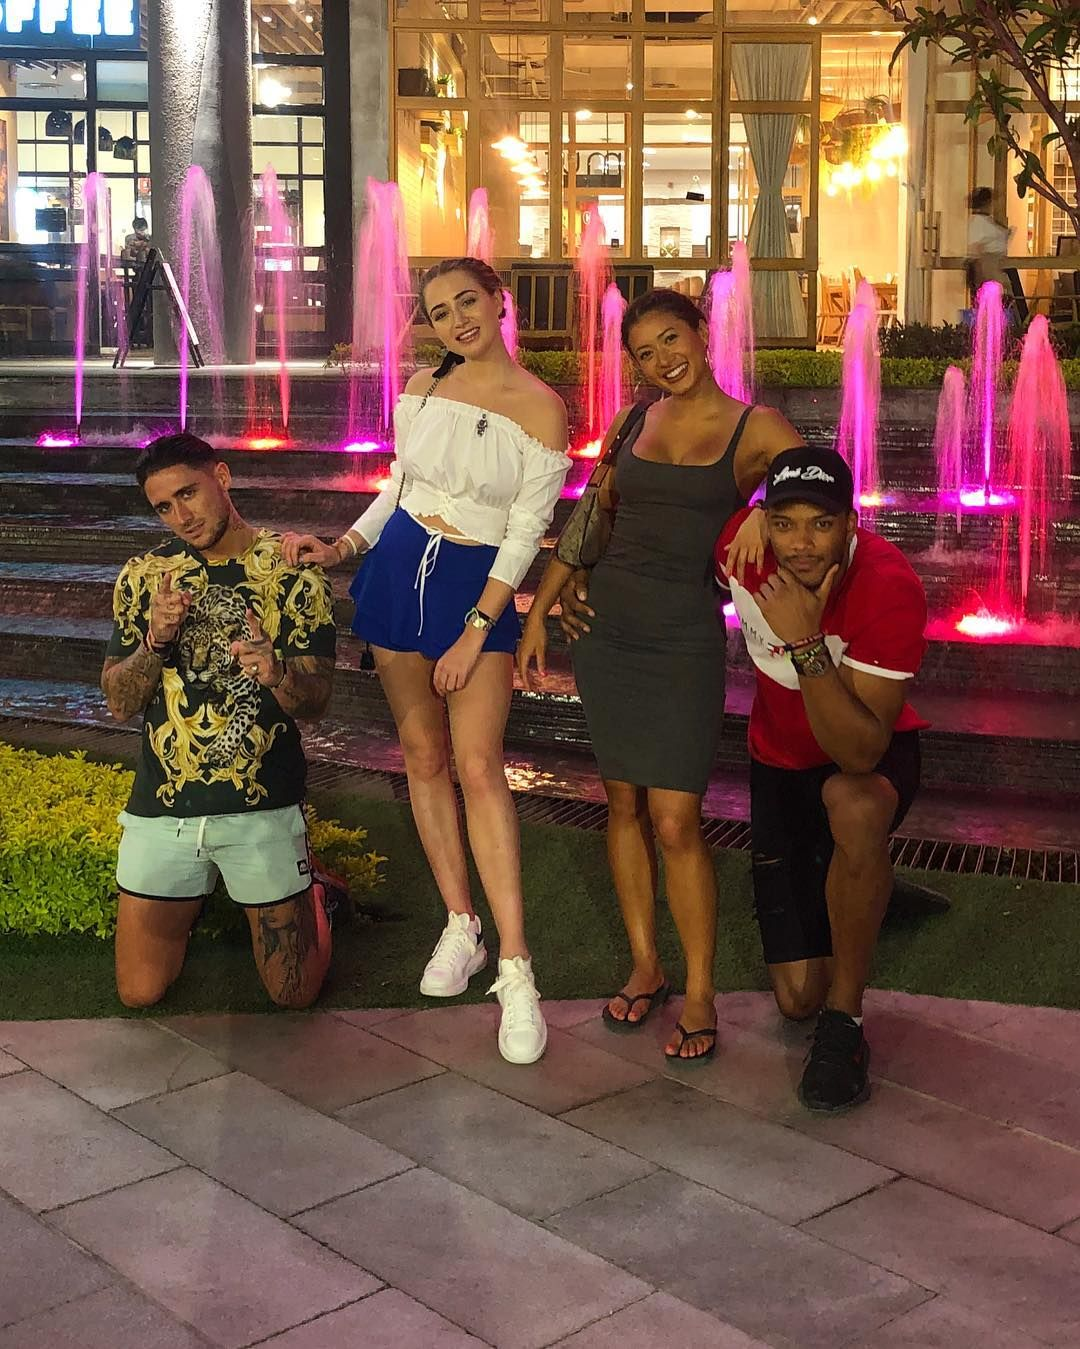 Image may contain: Kaz and Theo, Kazimir Crossley, Kaz Crossley, Theo Campbell, Love Island, dating, girlfriend, boyfriend,Female, Water, Skirt, Shoe, Footwear, Shorts, Human, Person, Apparel, Clothing